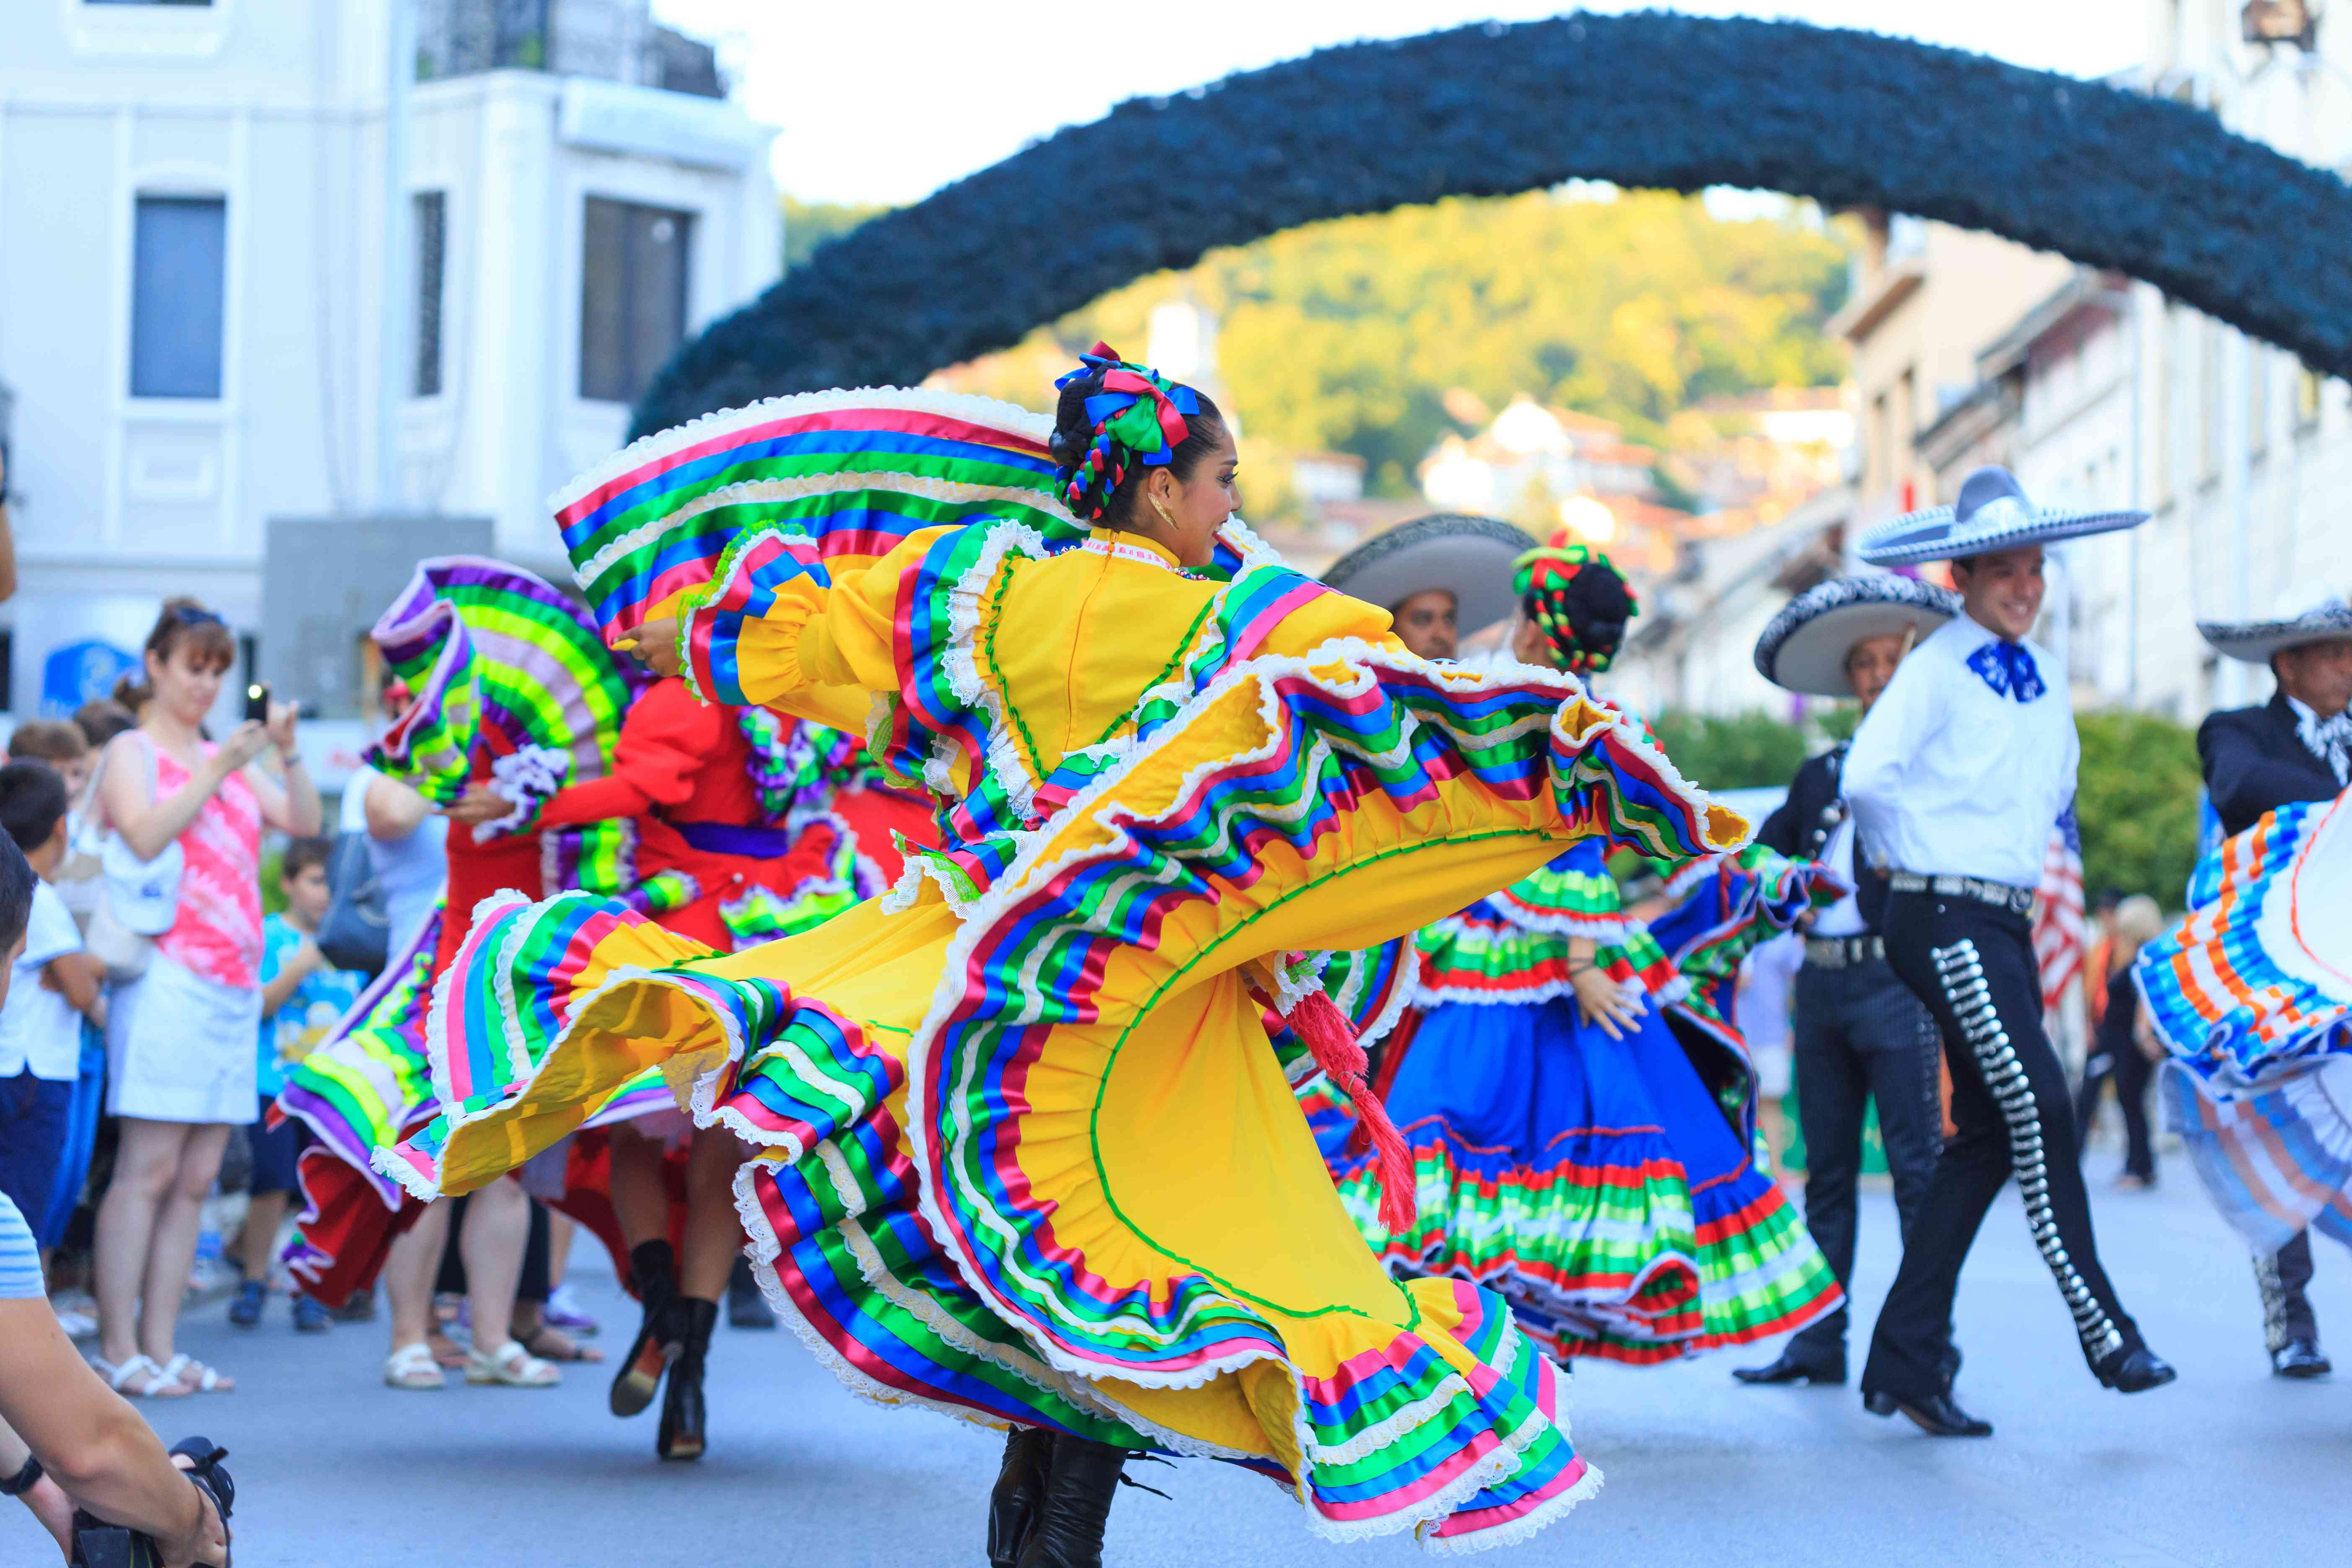 Performers in traditional costumes from Mexican group dancing on street